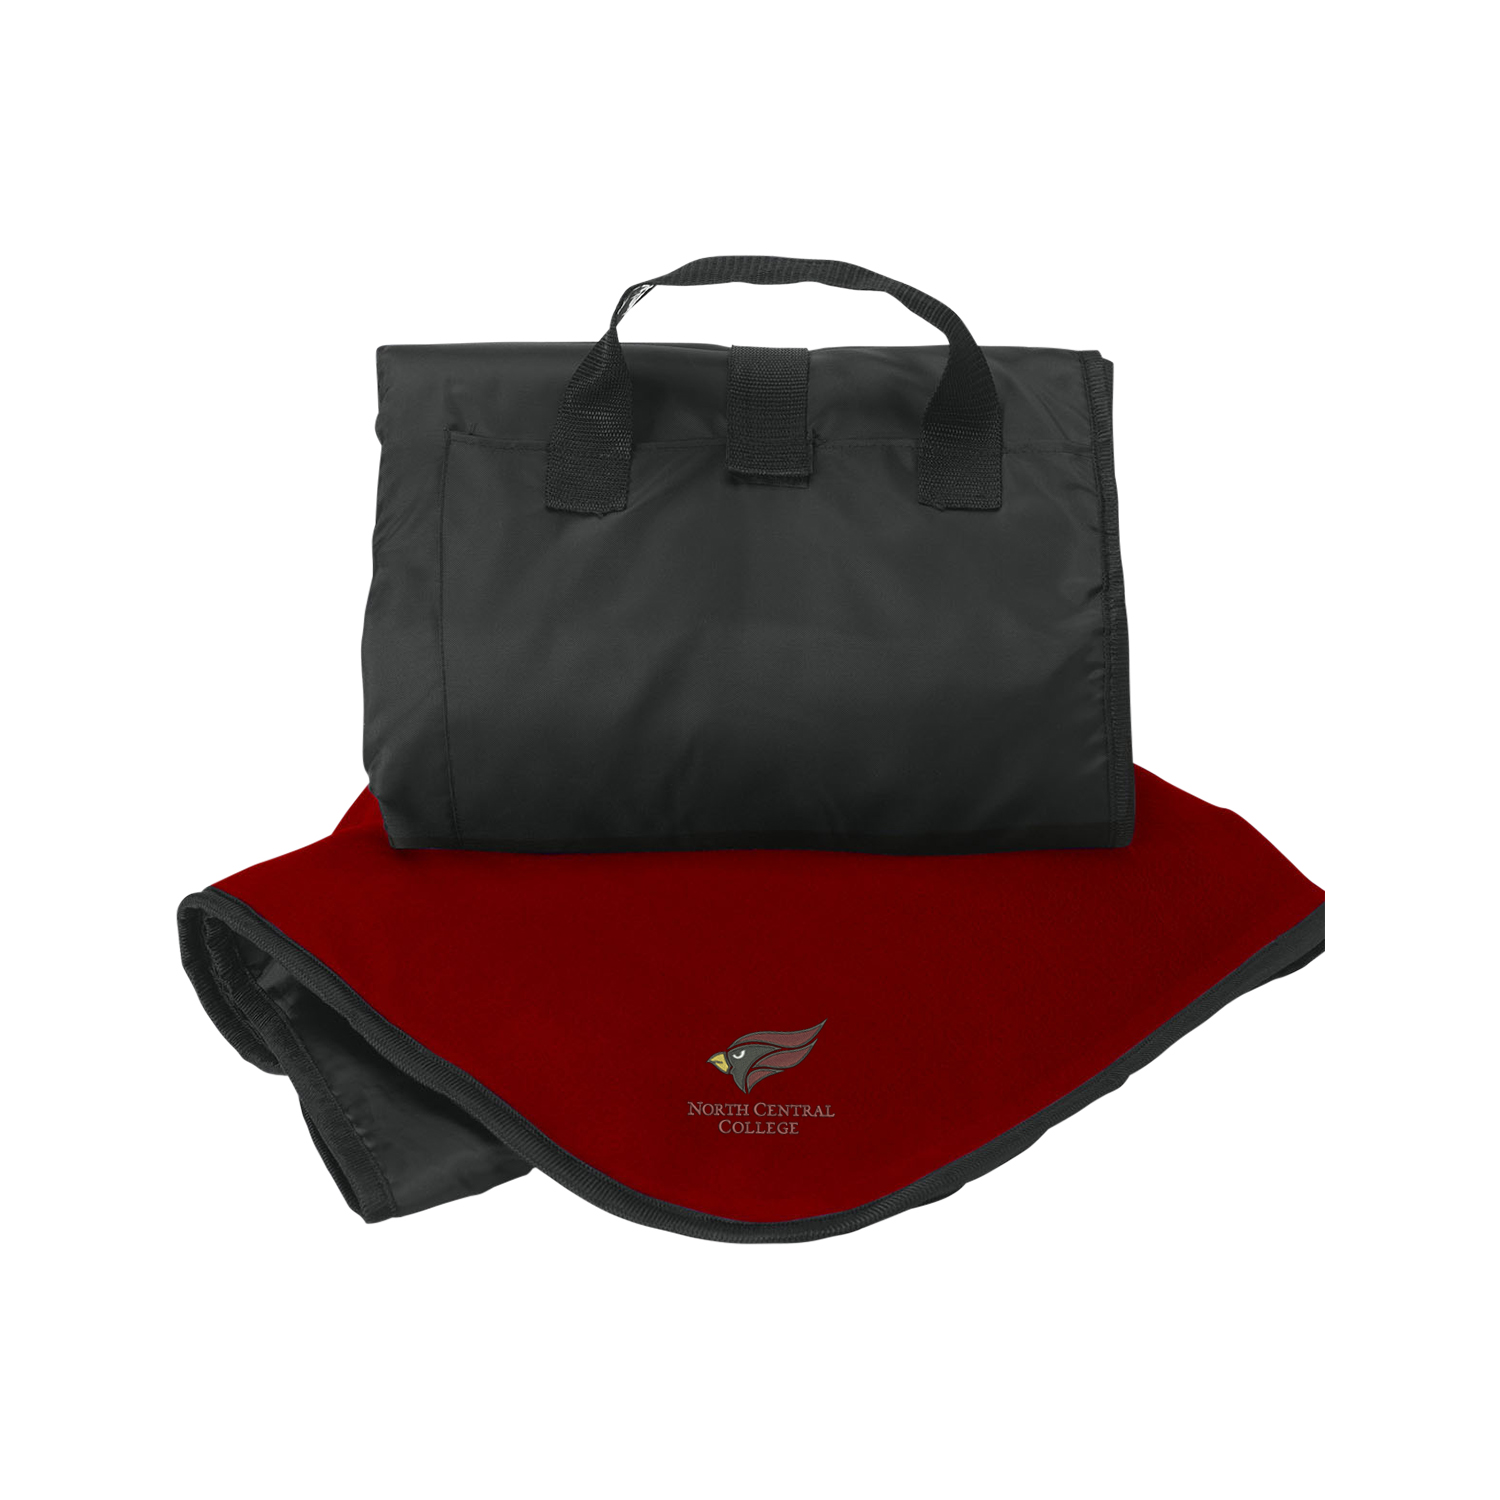 Image for the Packable Fleece Blanket product